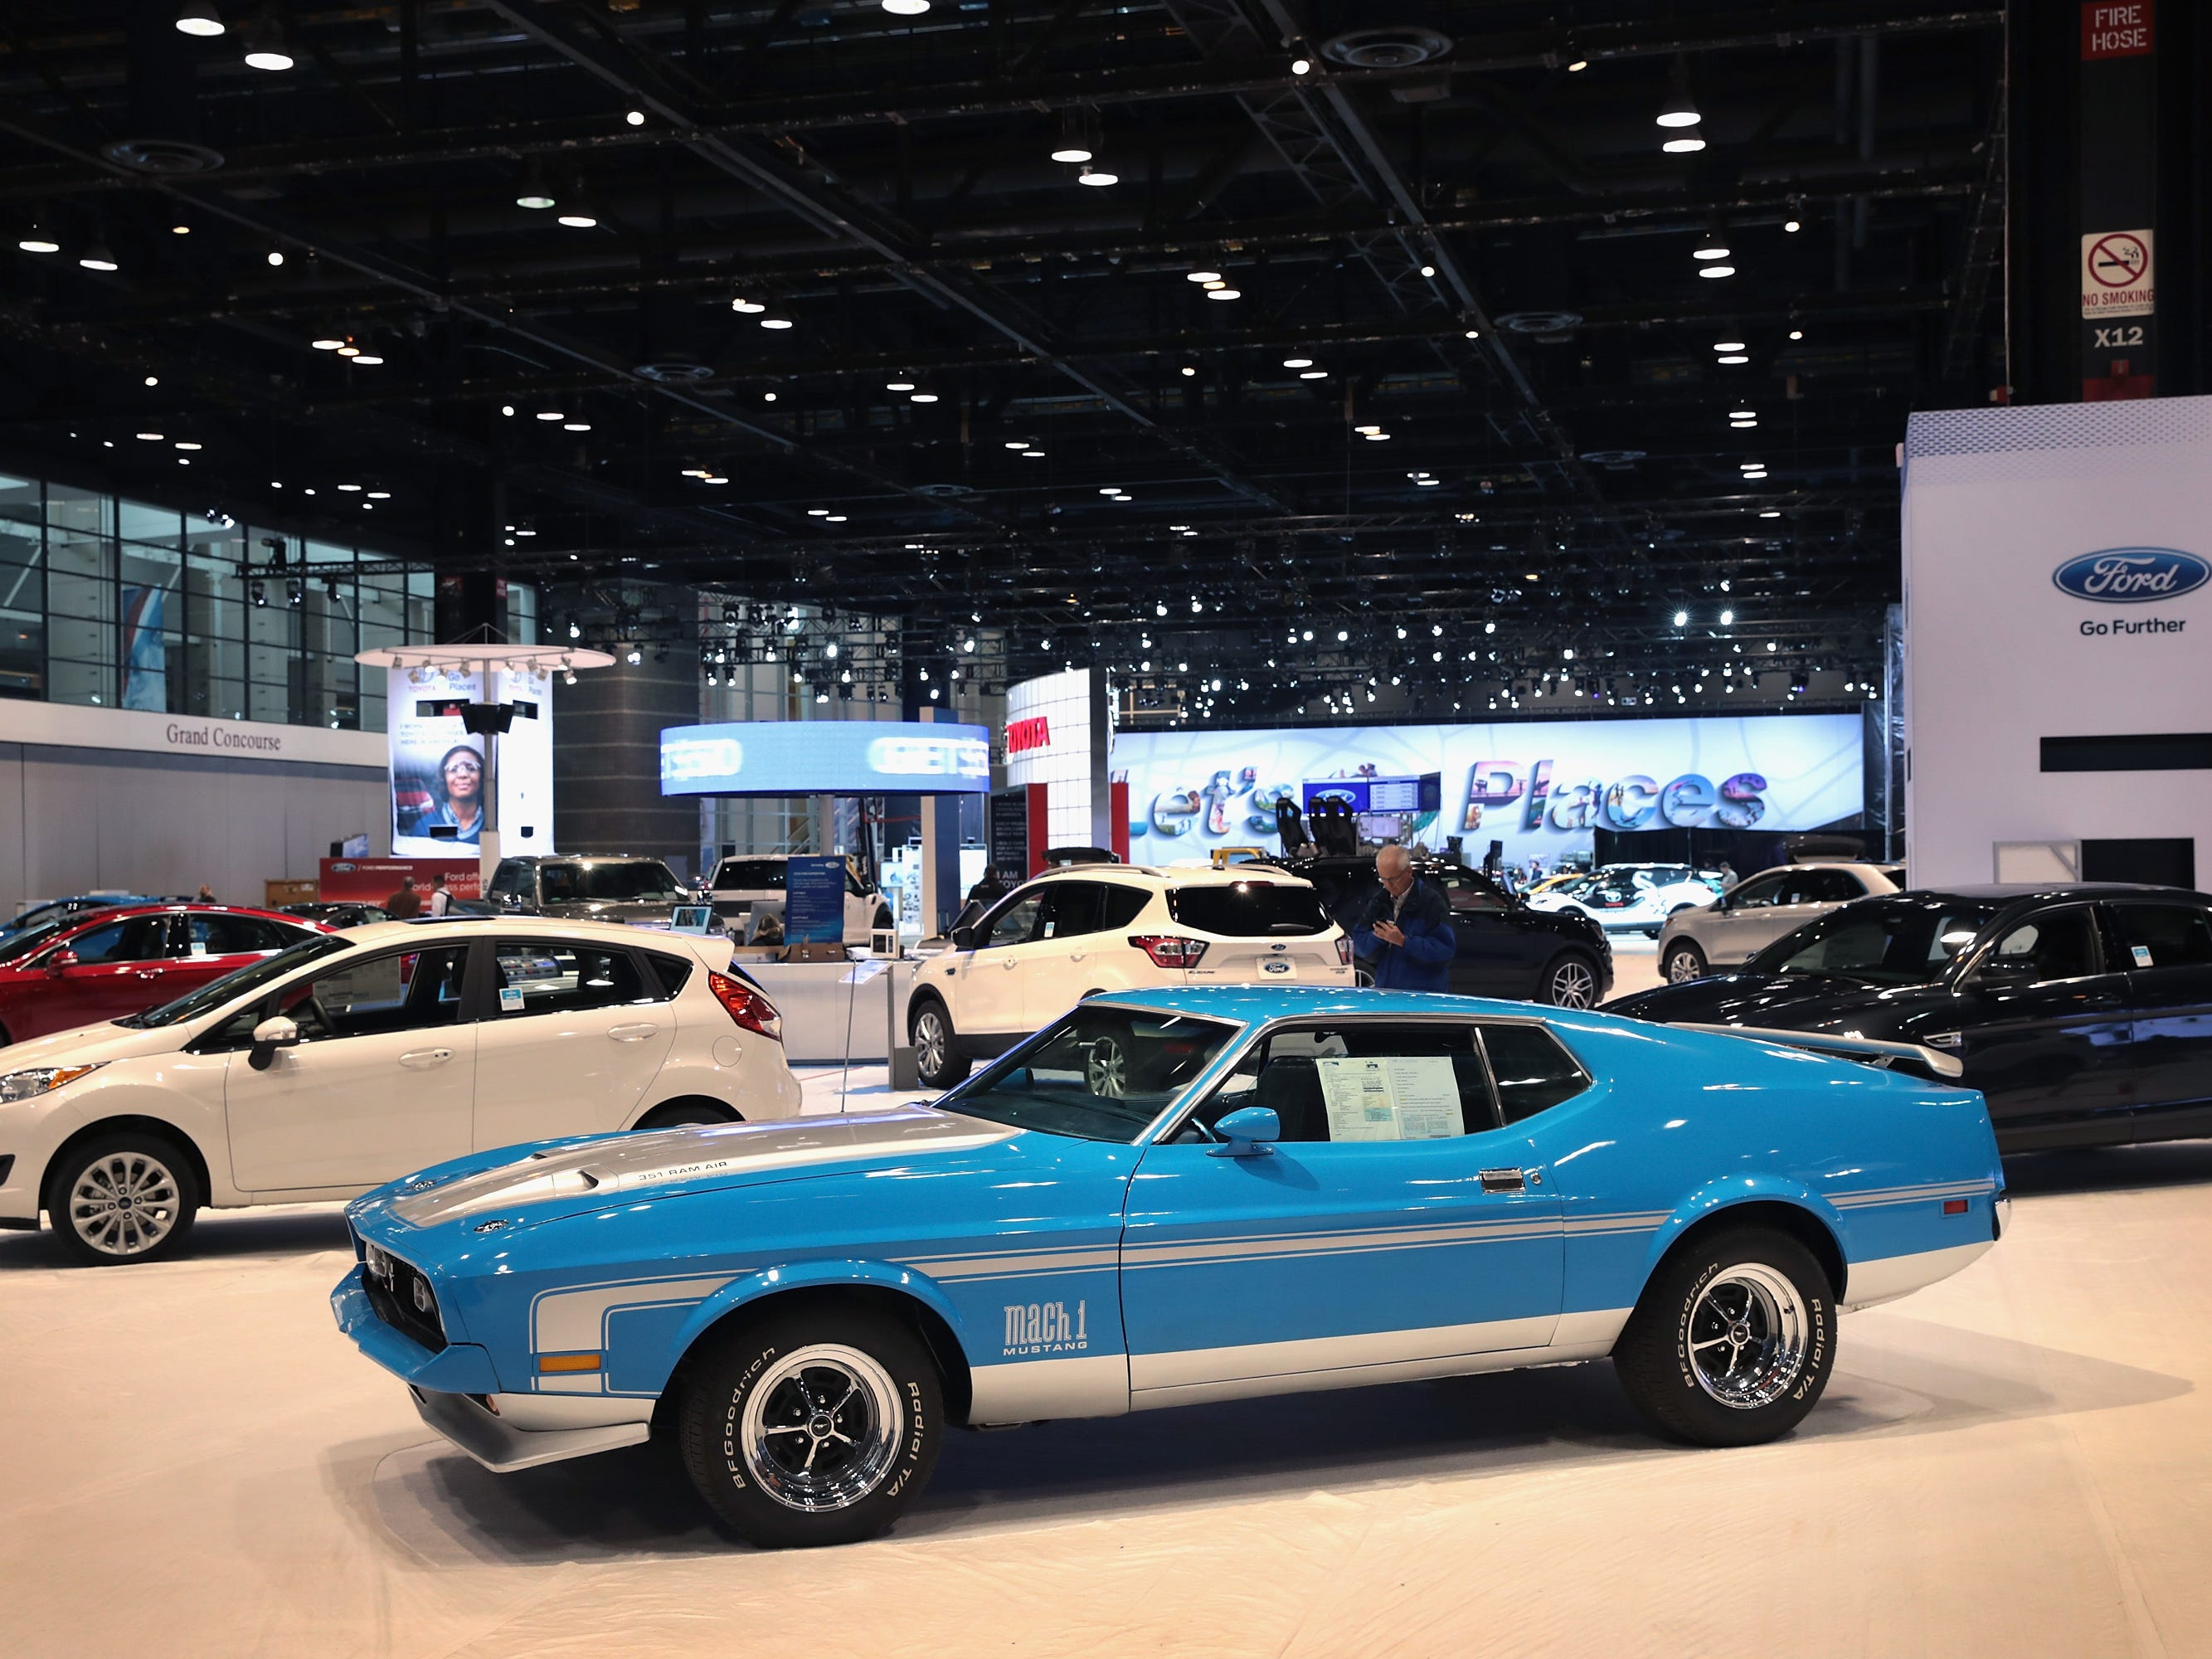 CHICAGO, IL - FEBRUARY 08:  A 1971 Mustang Mach 1 sits among new ford vehicles as workers prepare the floor for the opening of the Chicago Auto Show on February 8, 2017 in Chicago, Illinois.  The auto show, which is the nation's largest, is open to the public February 11-20.  (Photo by Scott Olson/Getty Images) ORG XMIT: 1000003504 ORIG FILE ID: 634281504